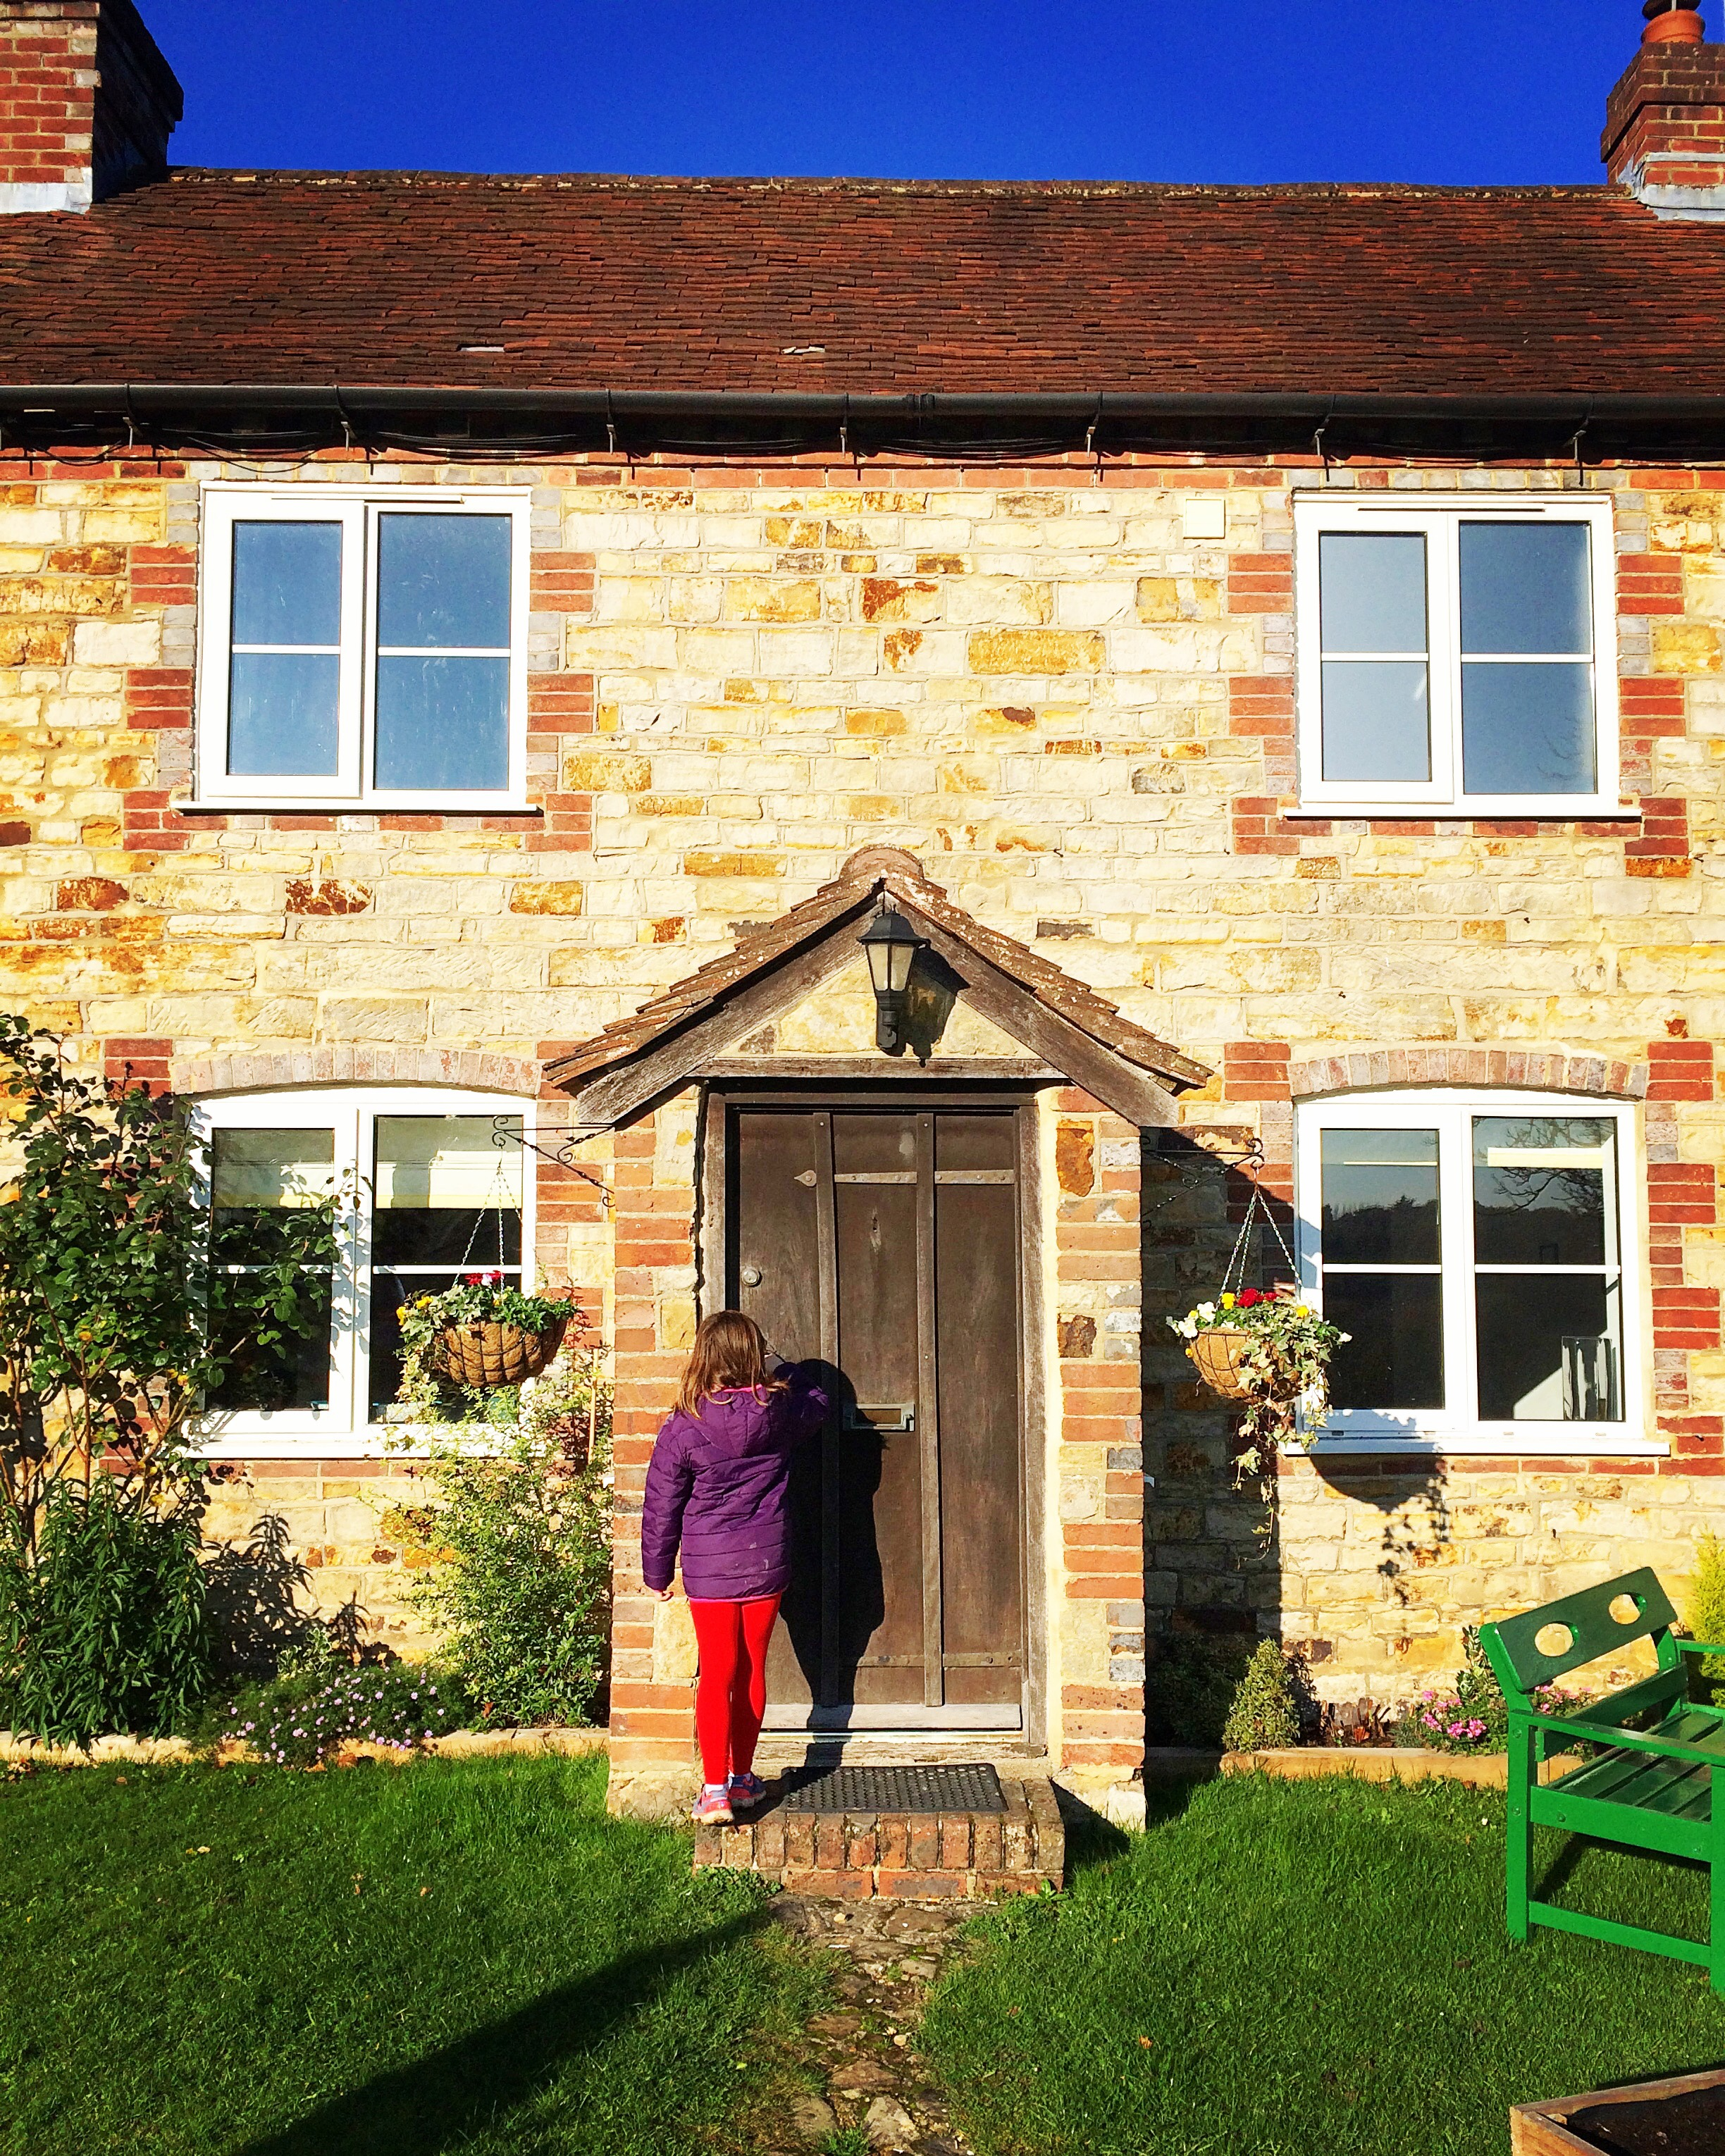 Nutley Edge Holiday Cottages And Farm: Accessible Holidays